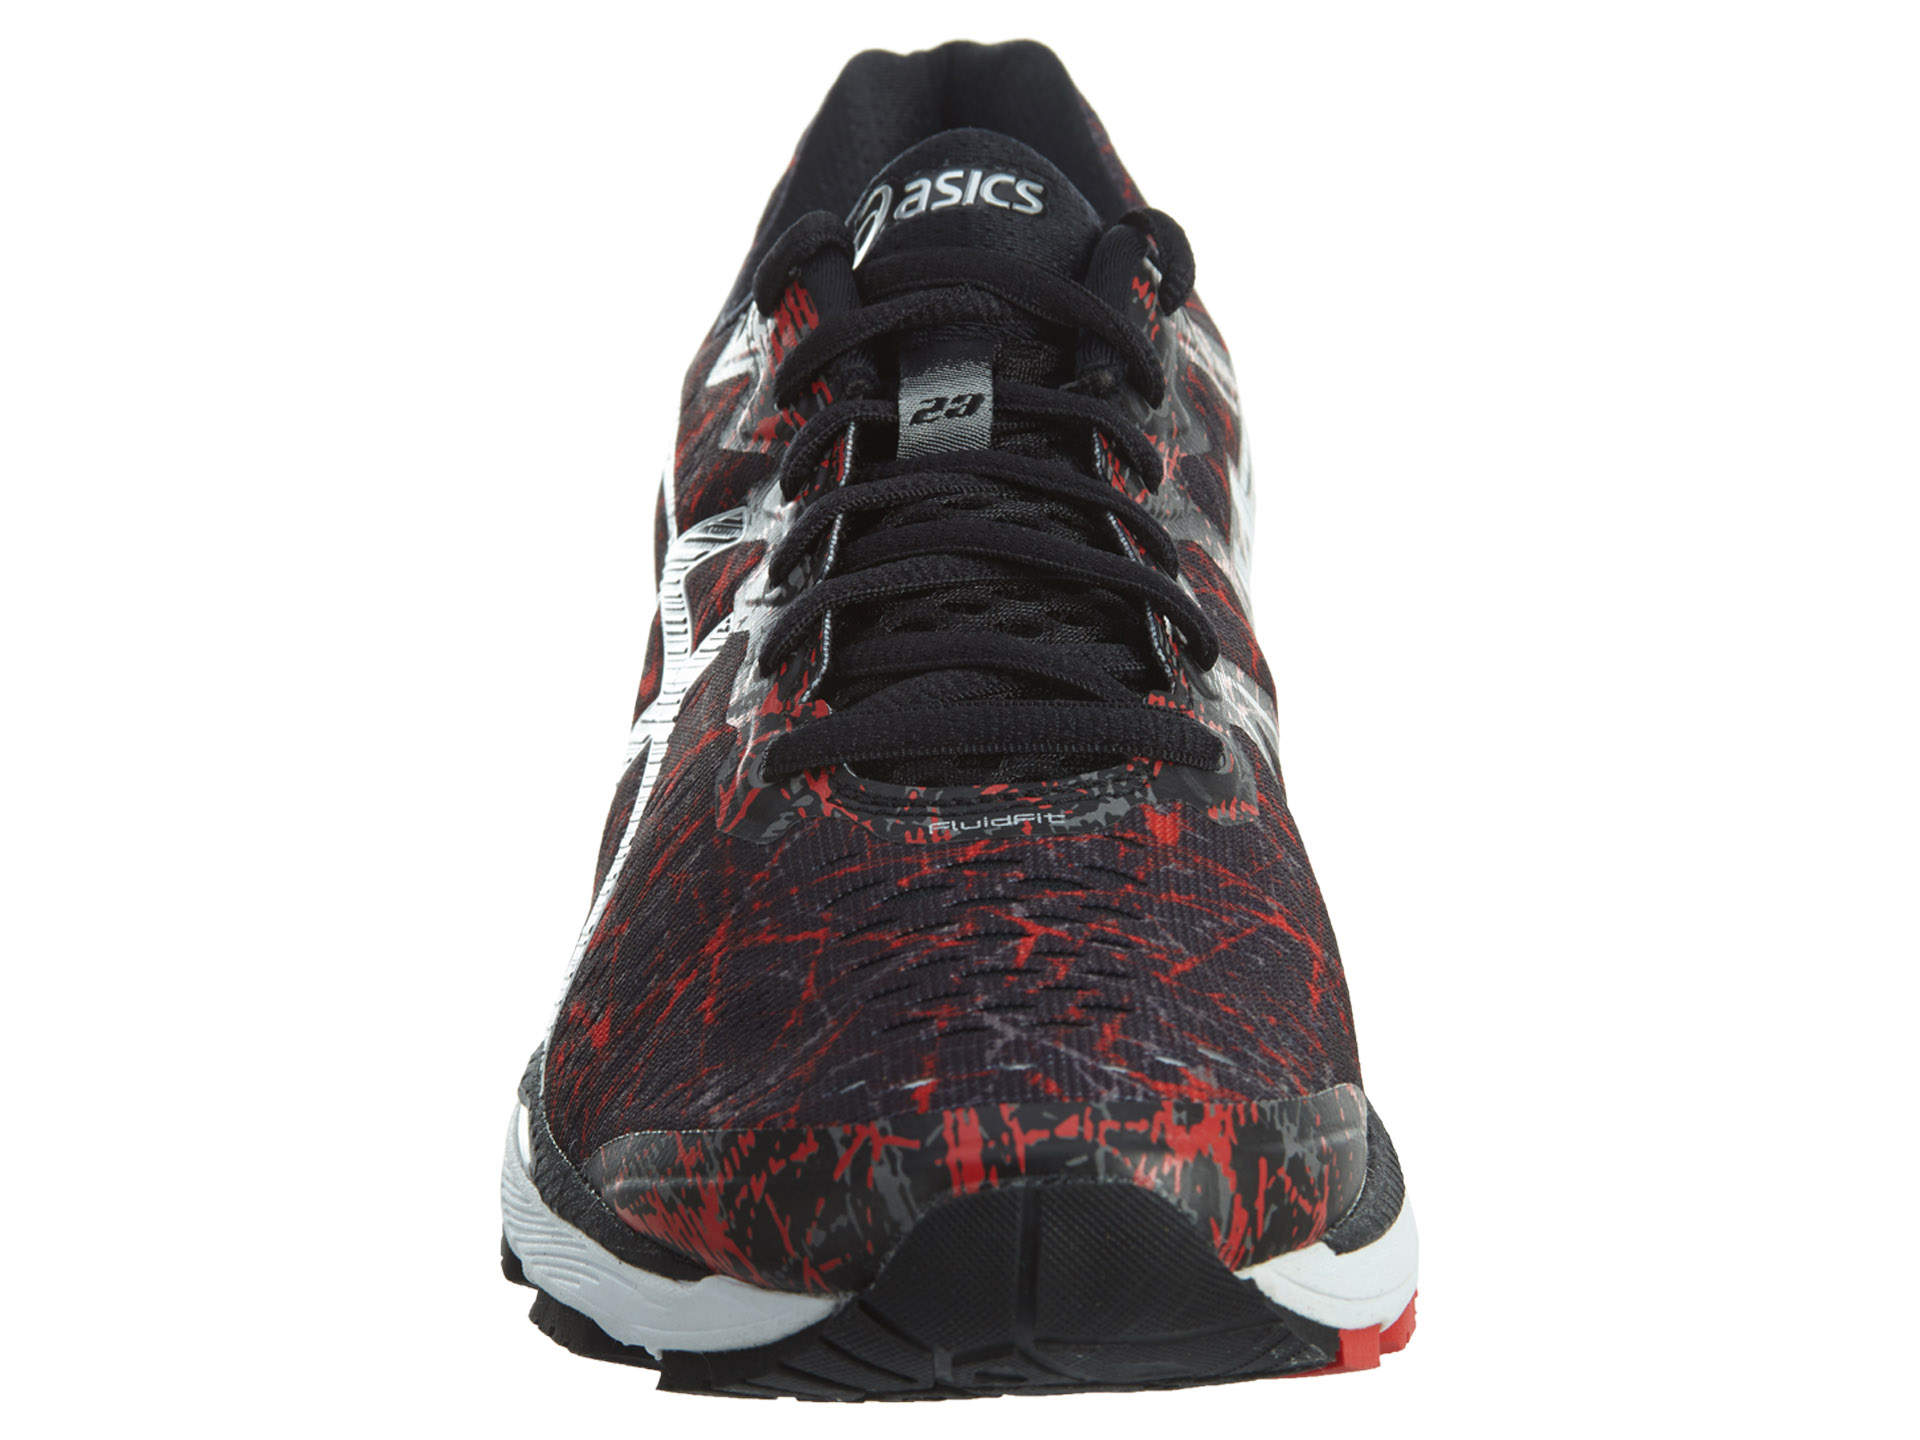 size 40 c97a0 324e4 Asics Gel-kayano 23 Mens Style : T6a0n